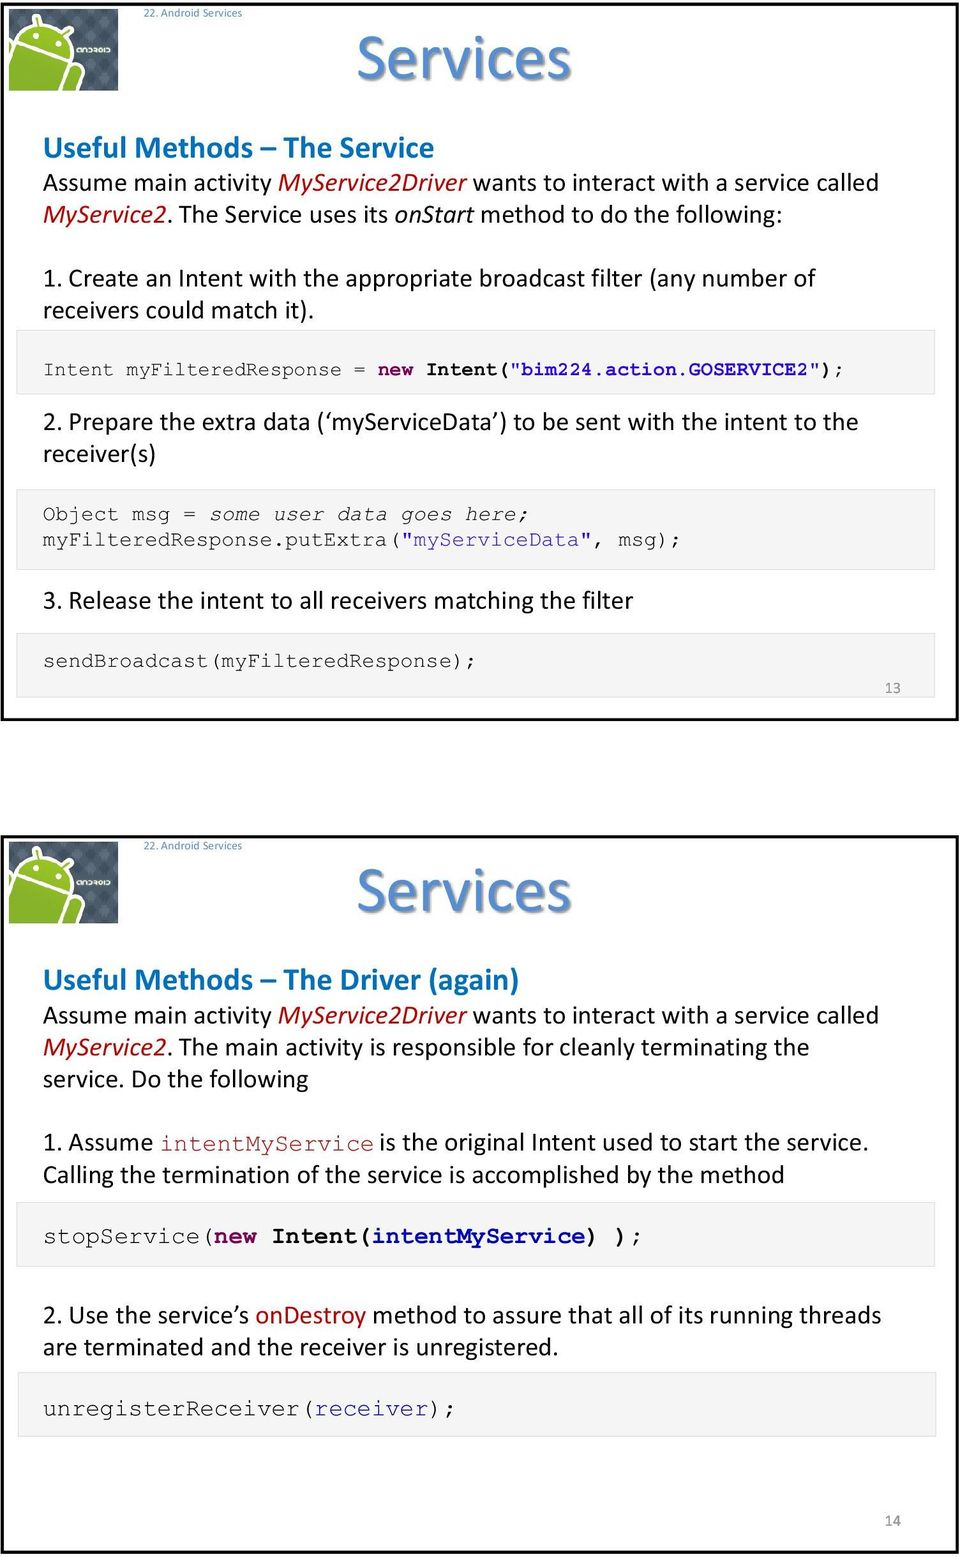 "GOSERVICE2""); myservicedata receiver(s) Object msg = some user data goes here; myfilteredresponse.putextra(""myservicedata"", msg); 3."